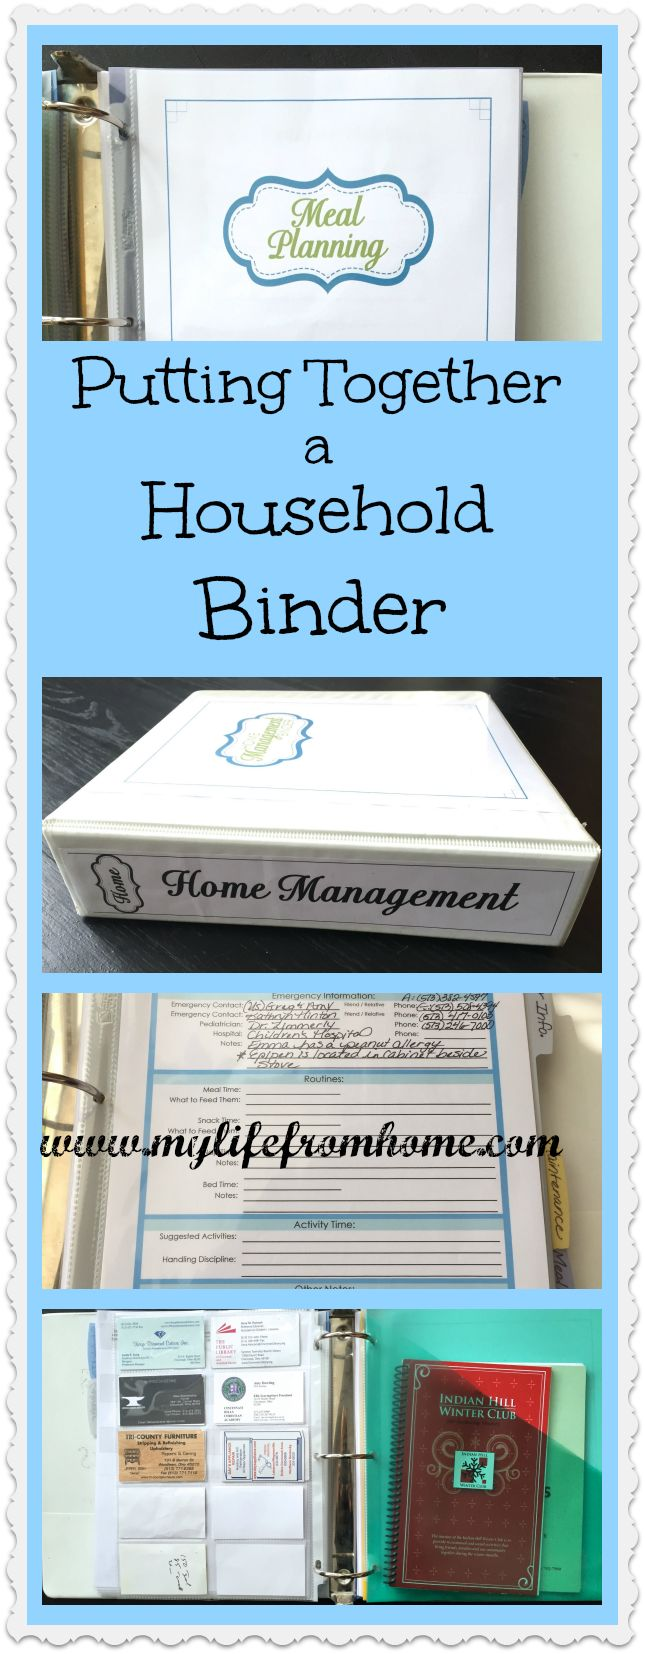 Putting Together a Household Binder | www.mylifefromhome.com